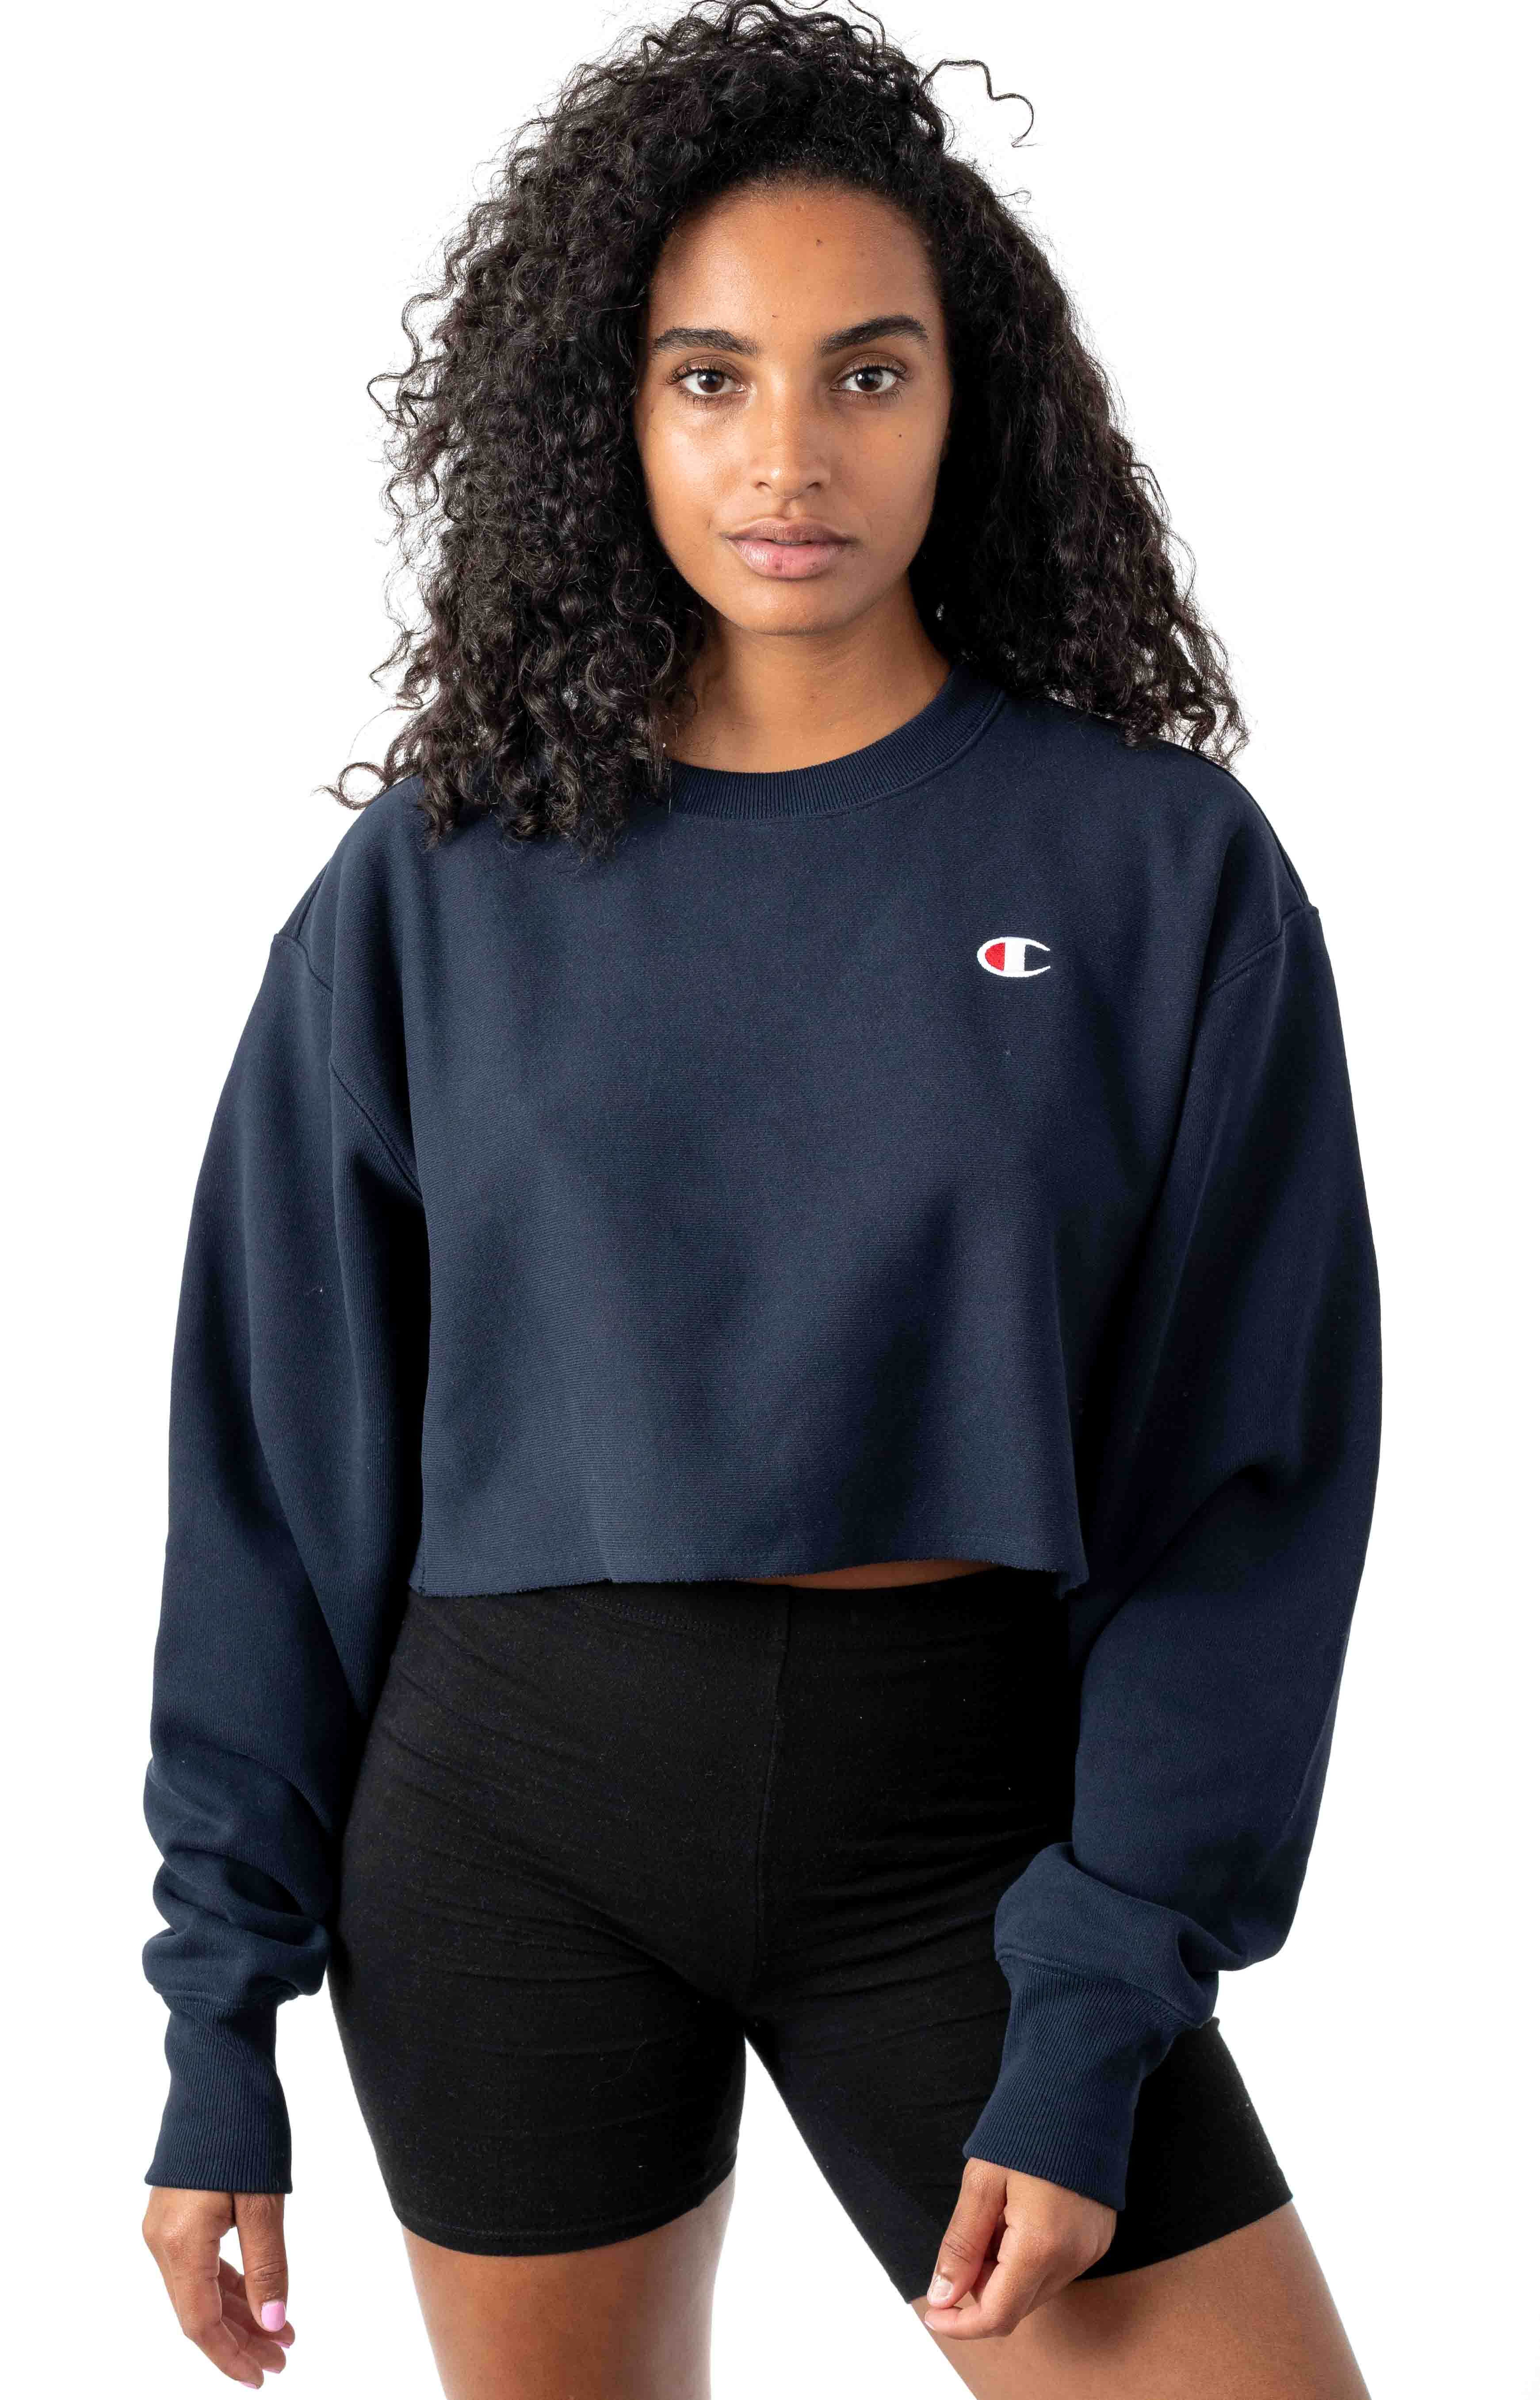 Reverse Weave Cropped Cut Off Crewneck - Navy